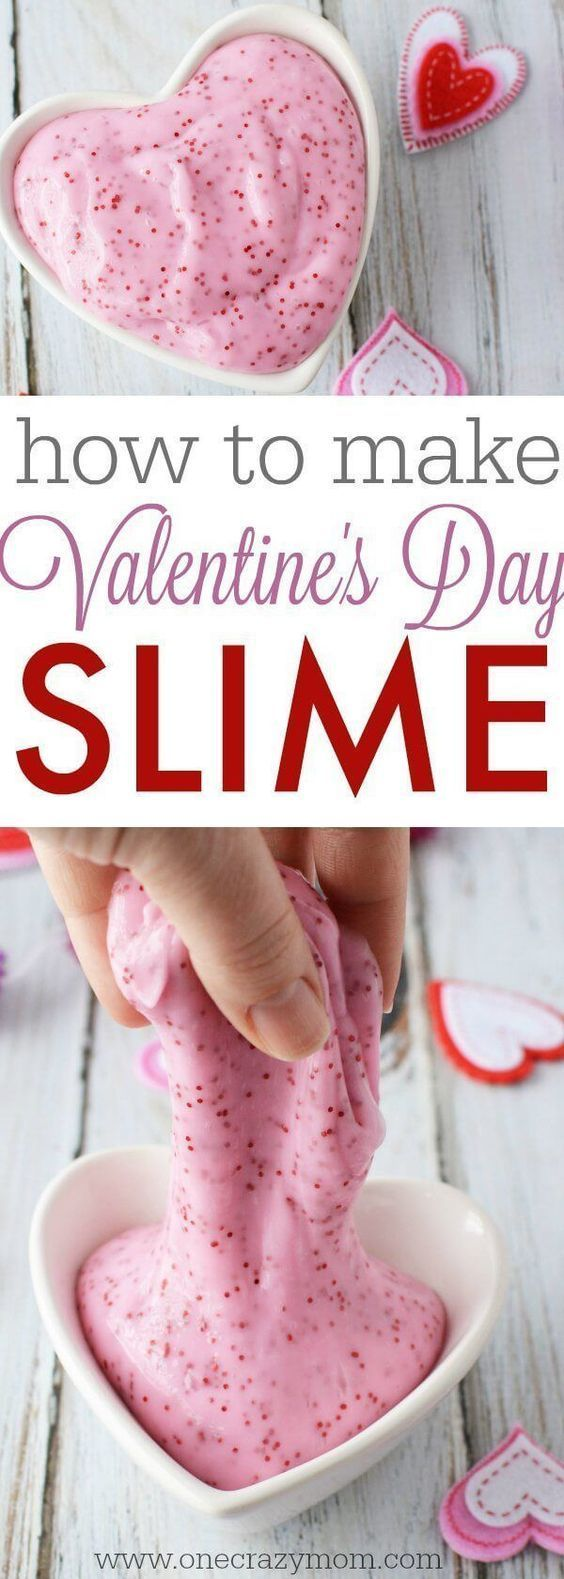 Make this easy slime recipe with your kids. They will love Valentine's Day Homemade Slime. DIY slime is a fun alternative to handing out candy and treats! #valentinesday #valentines #slime